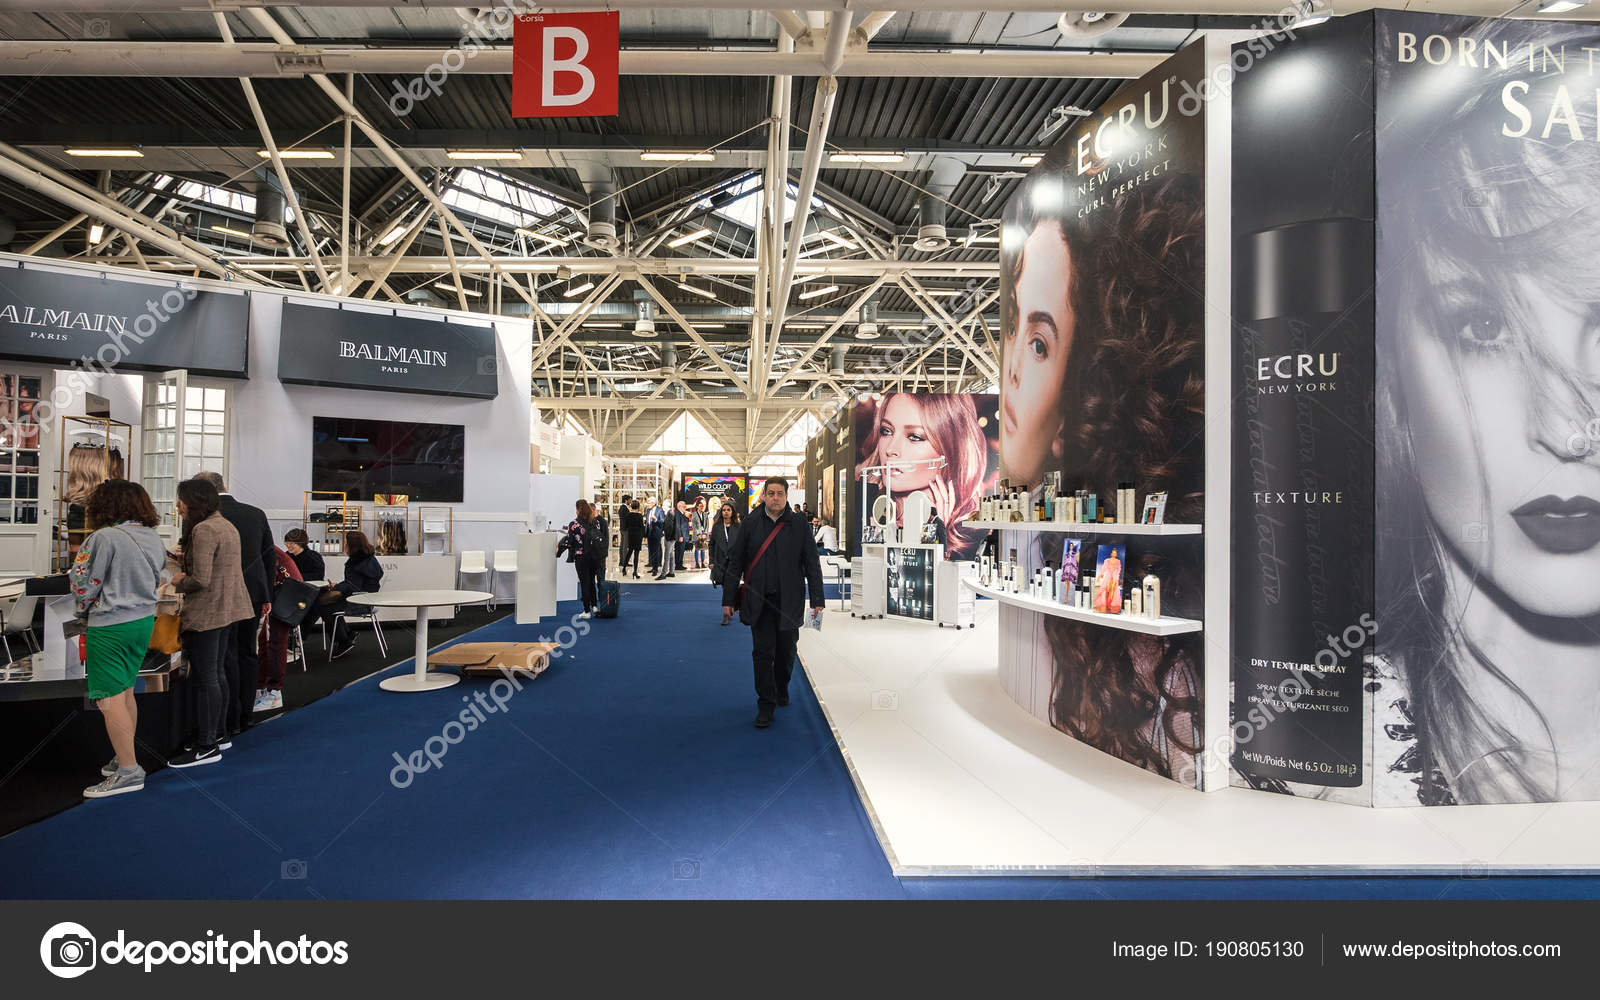 a67bcec39ce Bologna Italy March 2018 People Visit Cosmoprof Exhibition Largest ...